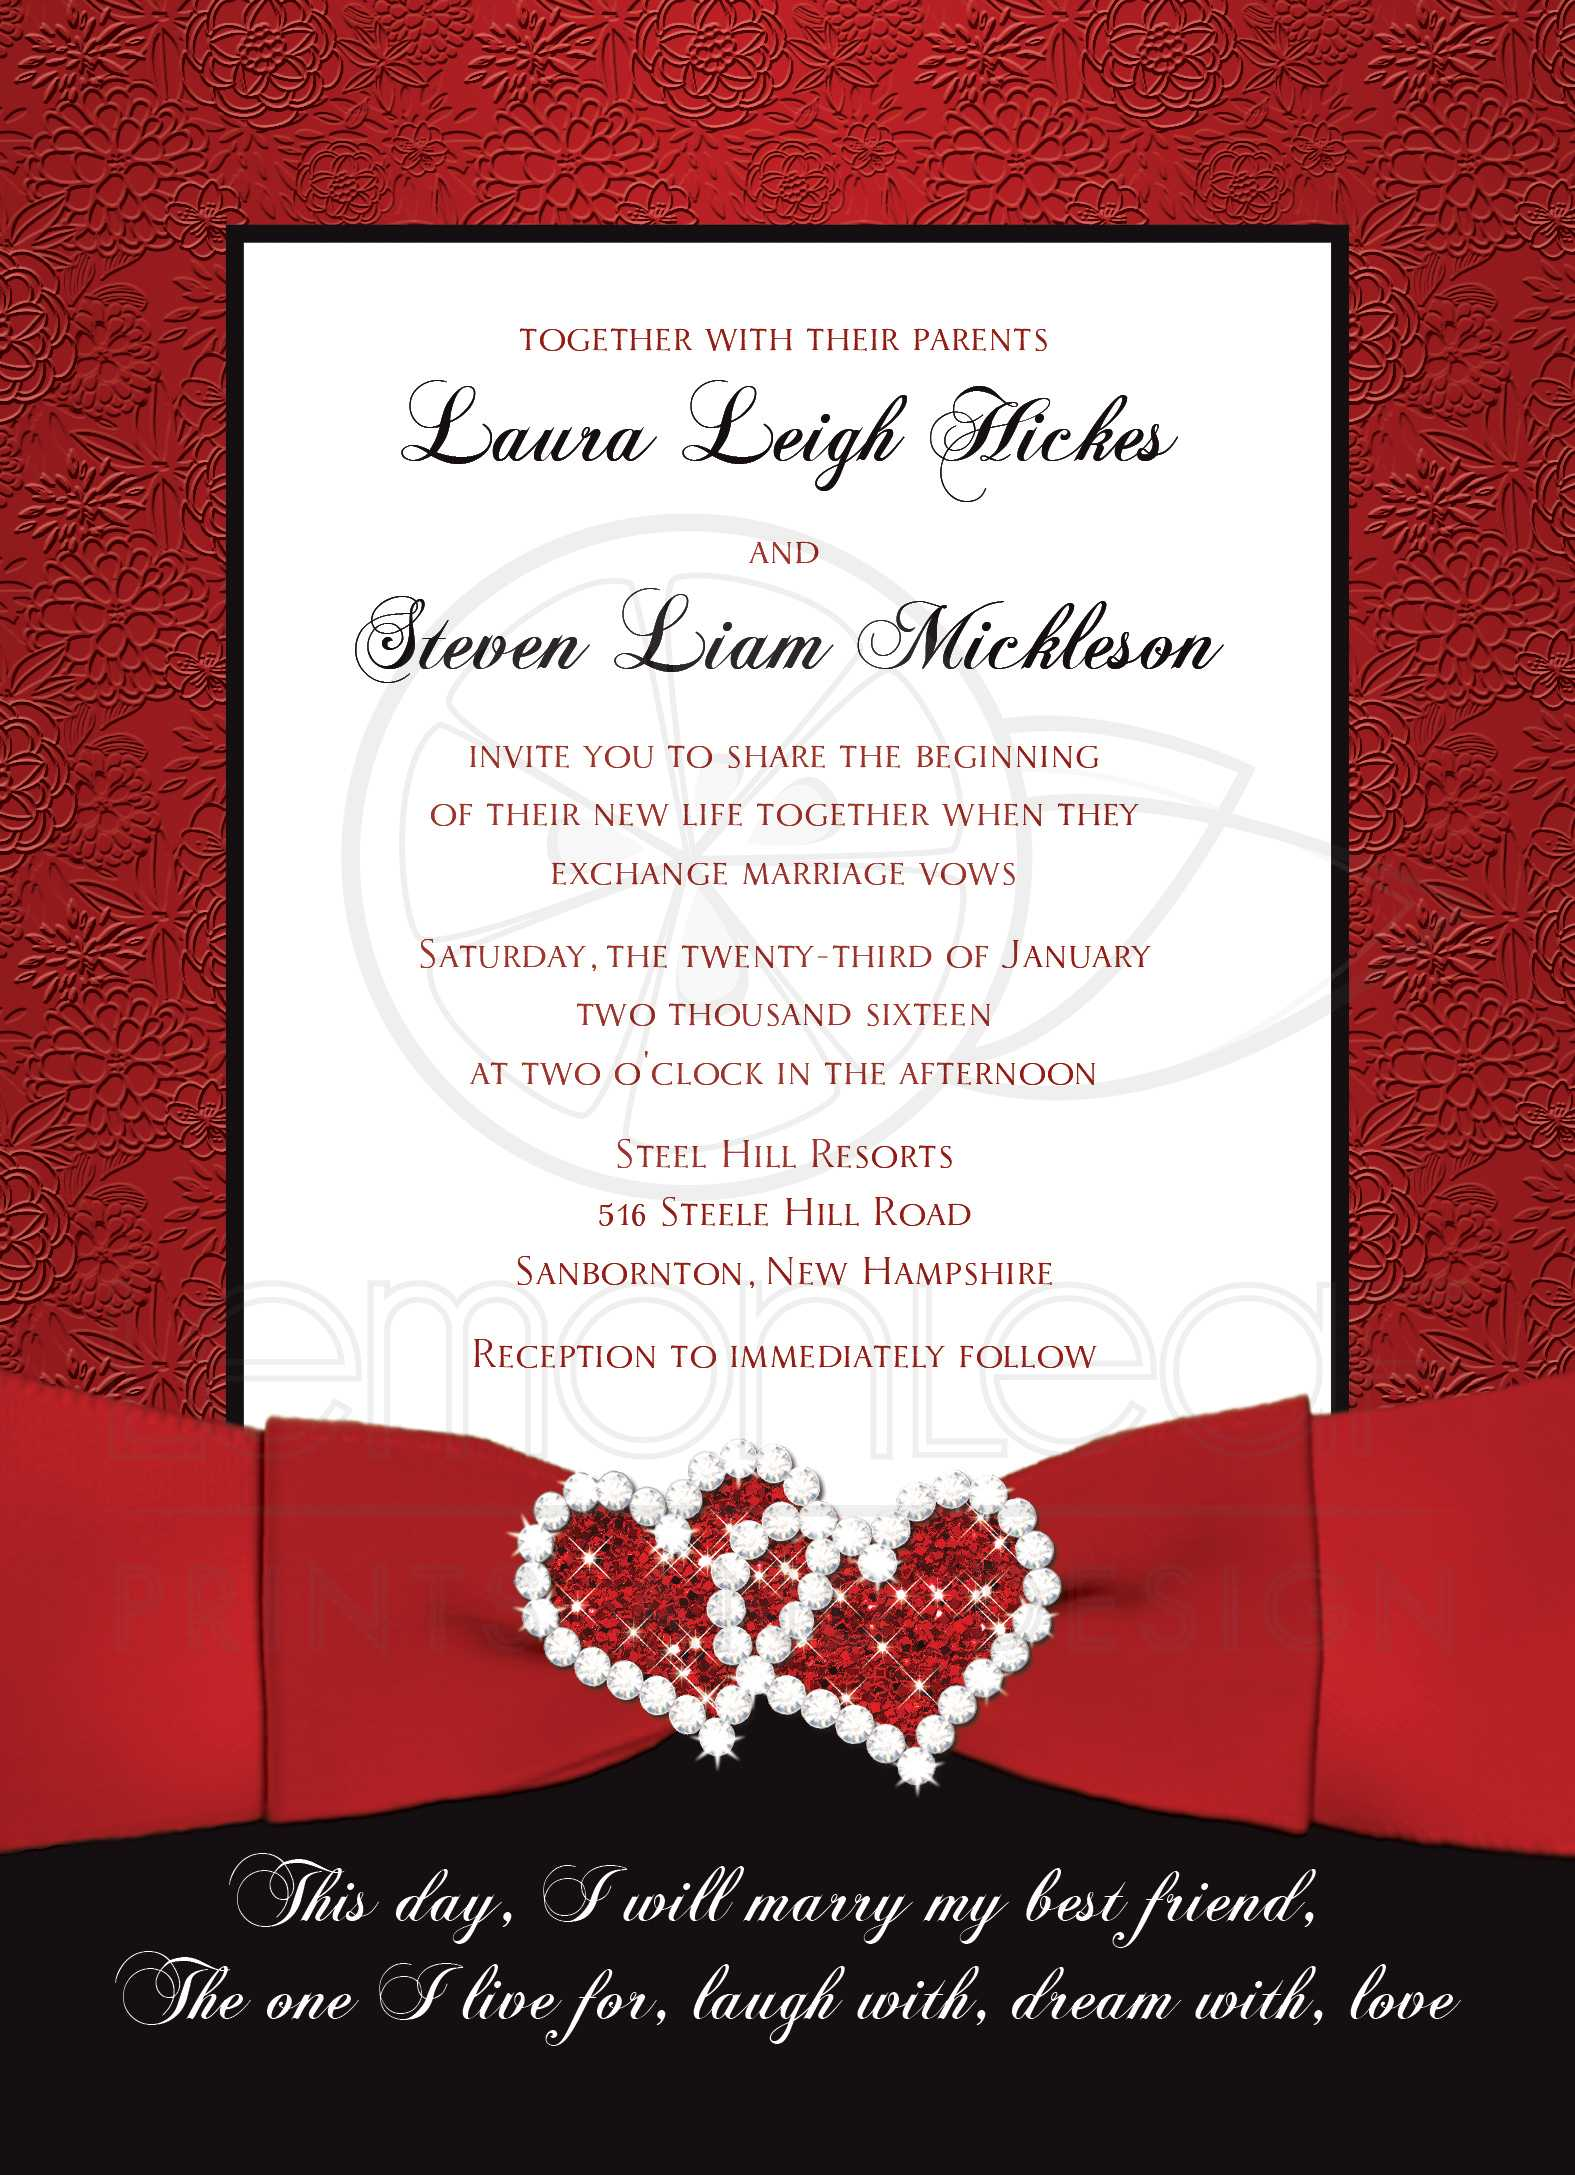 Wedding Invitation | Red, Black, White Floral | Printed Ribbon